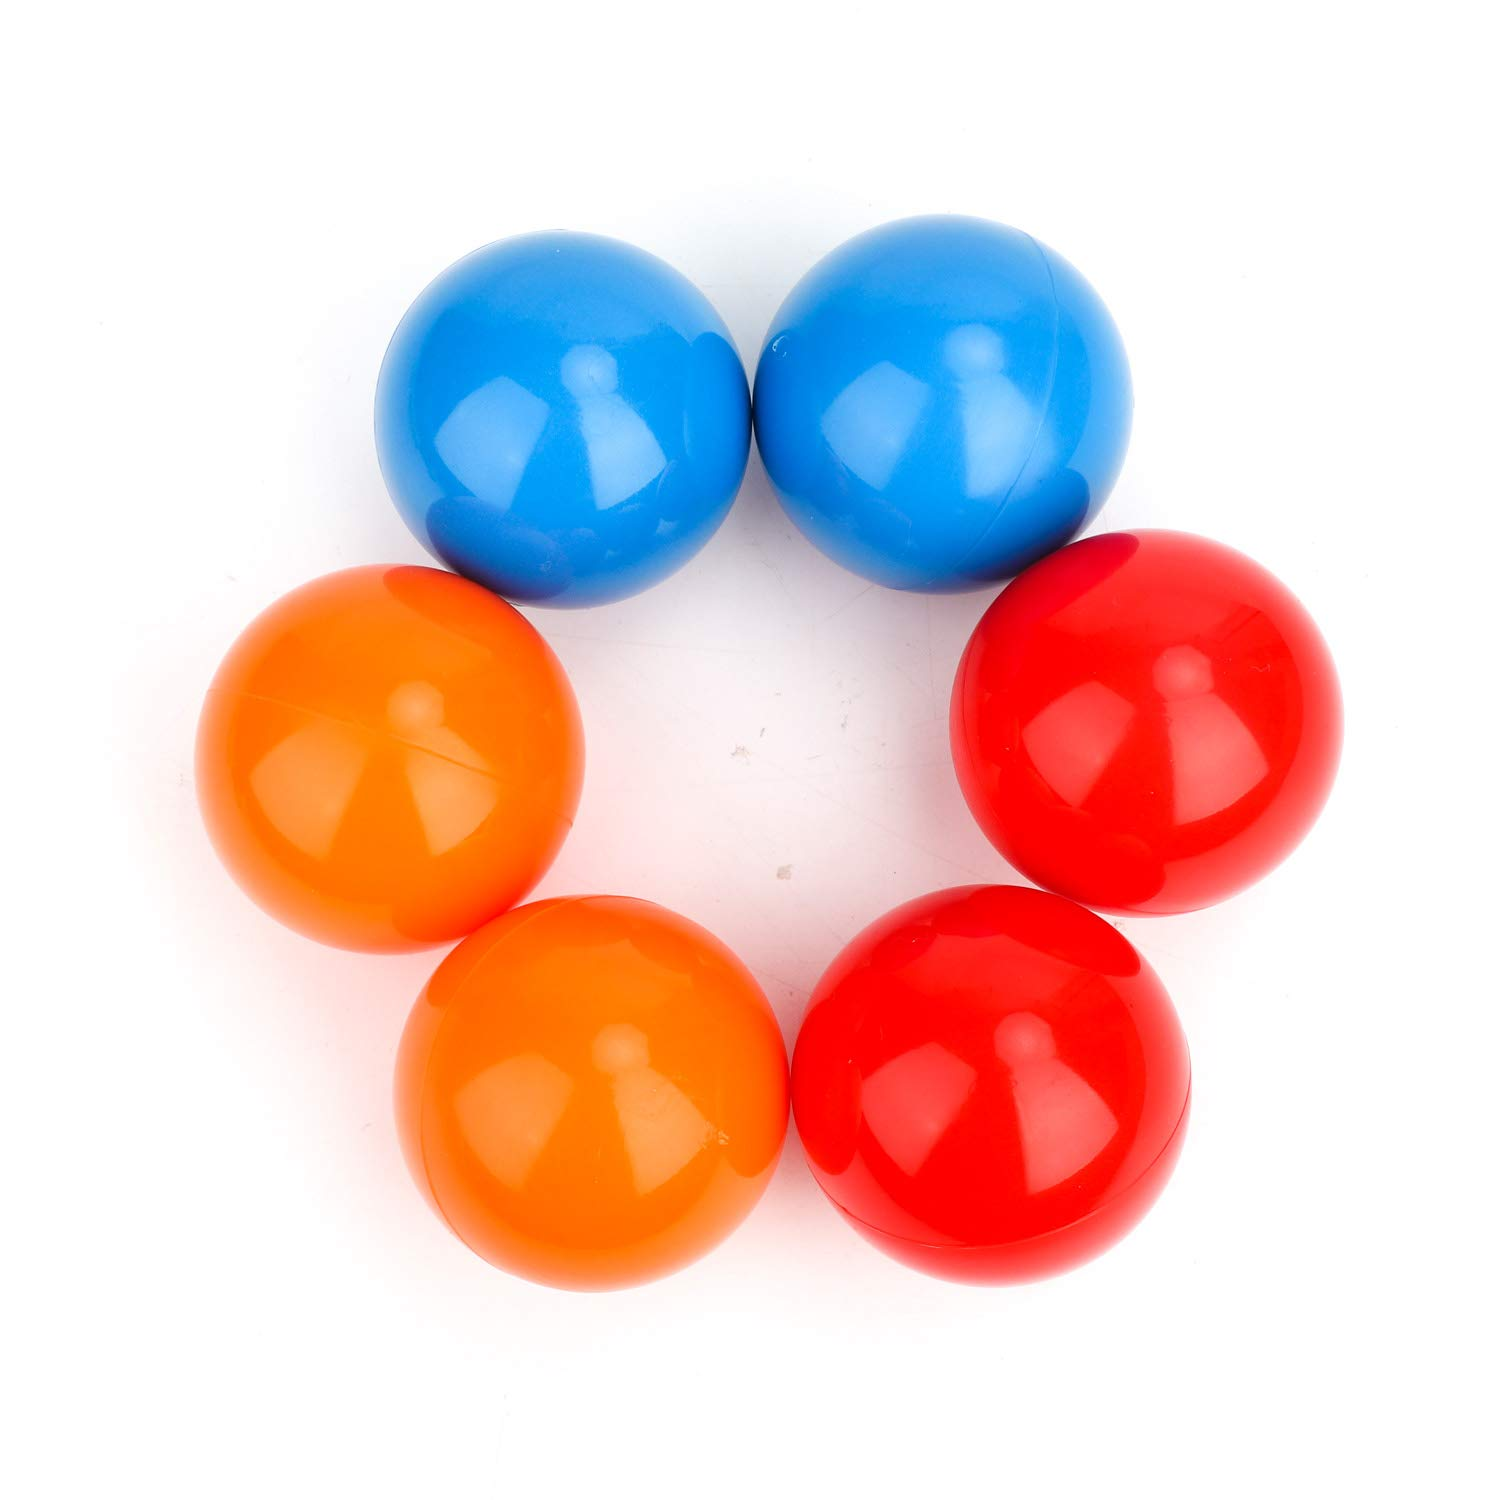 YuXing Professional Juggling Ball, Size 2.6'' to Large 3.5'', Toy Ball Set for Beginners&Professionals, for Adults, Set of 3 or 6 (Red Blue Orange) (2.6'' Juggling Ball Pack of 6)